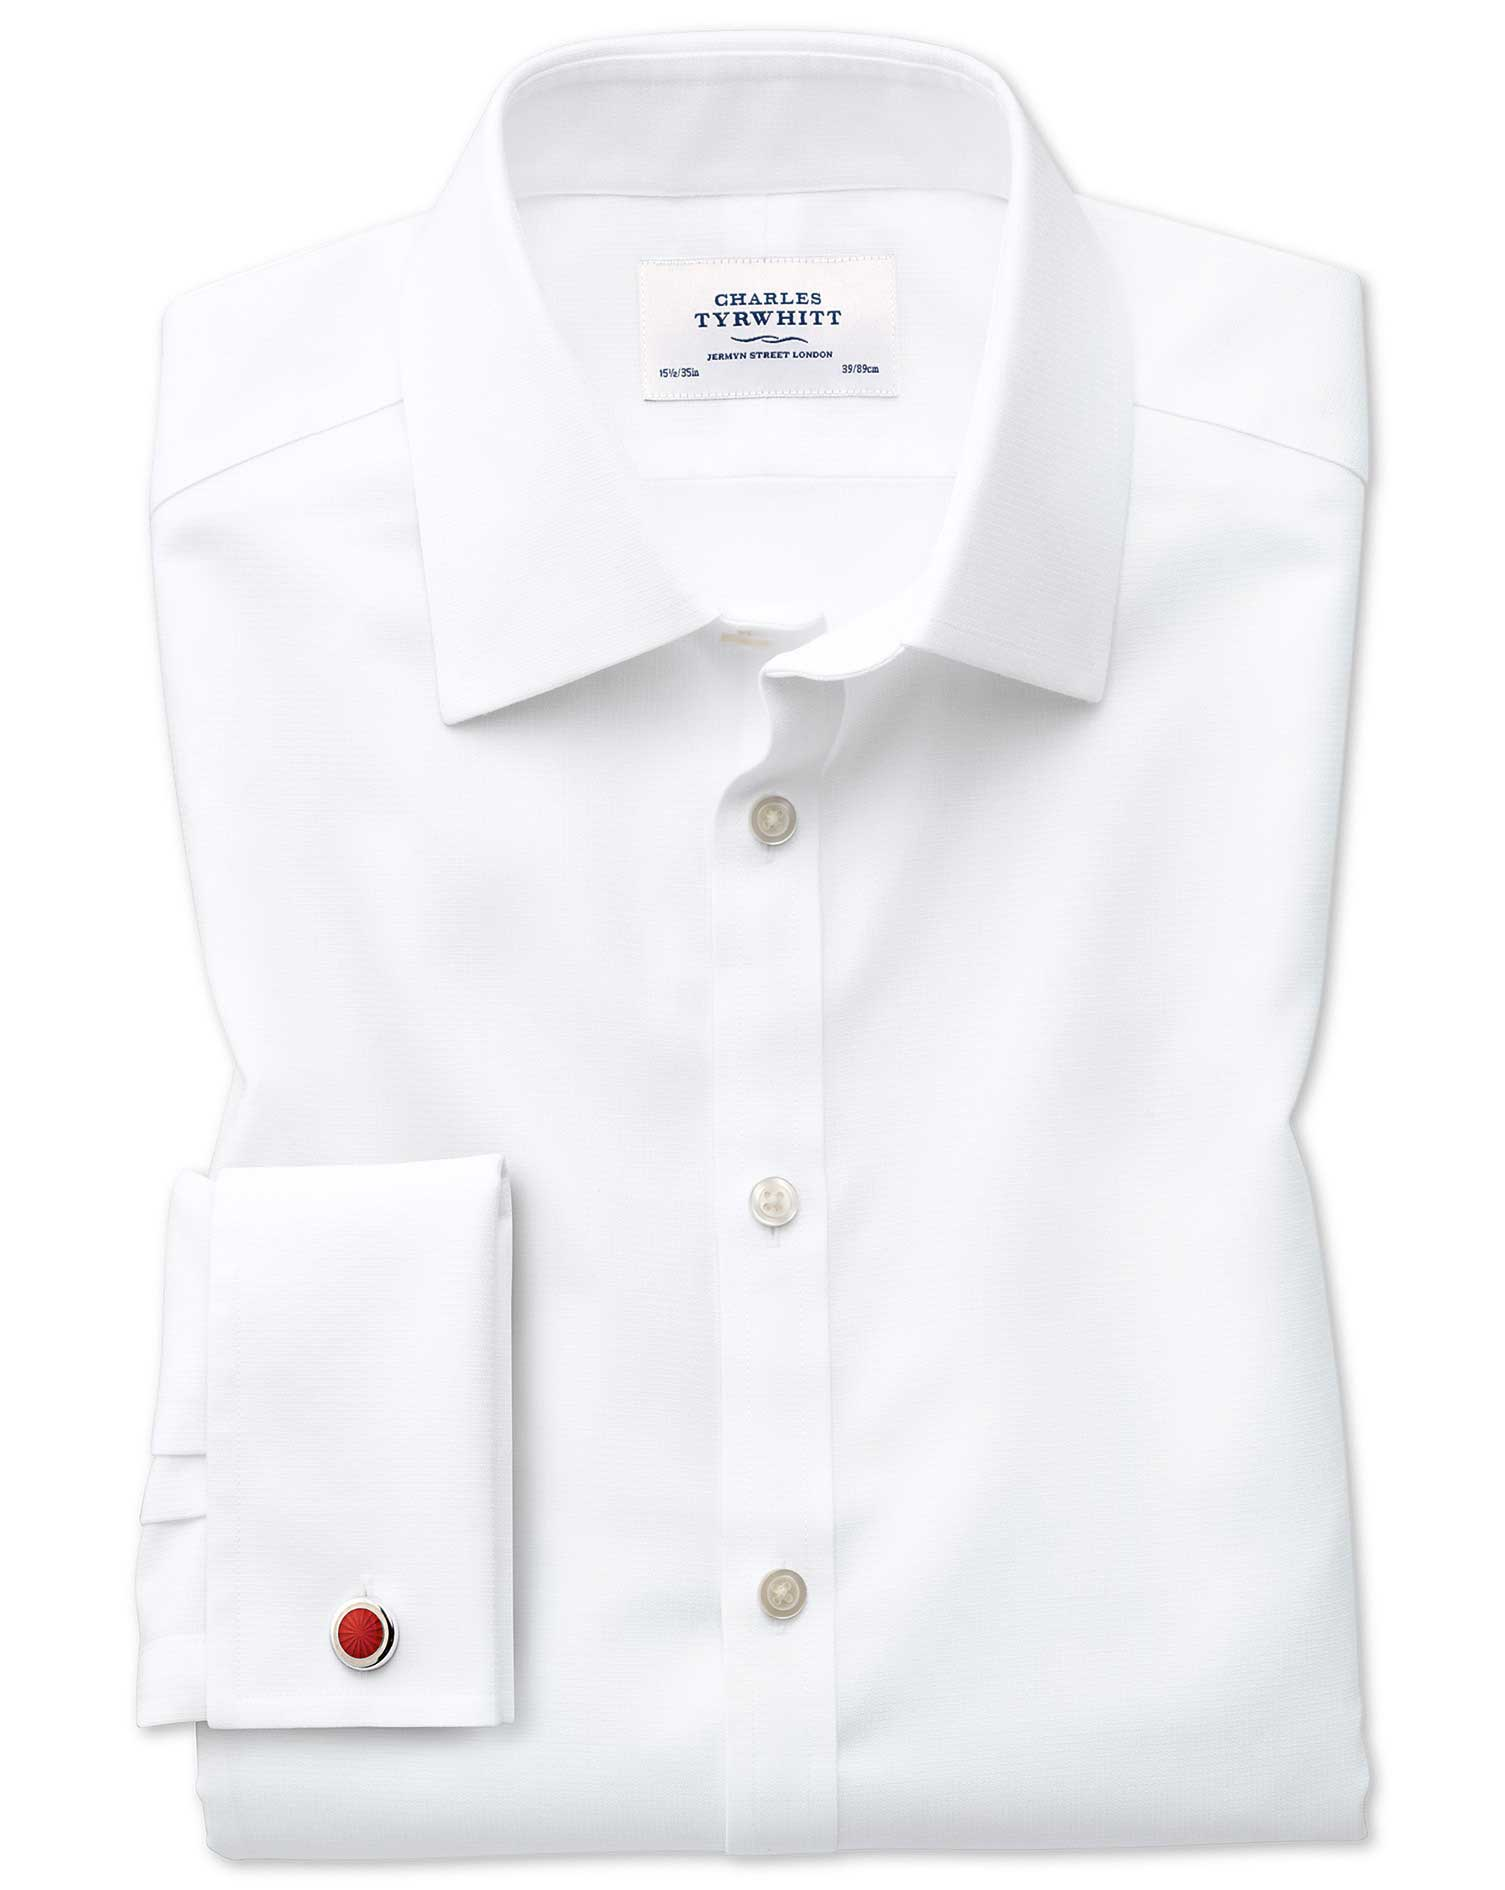 Slim Fit Non-Iron Square Weave White Cotton Formal Shirt Single Cuff Size 15/35 by Charles Tyrwhitt